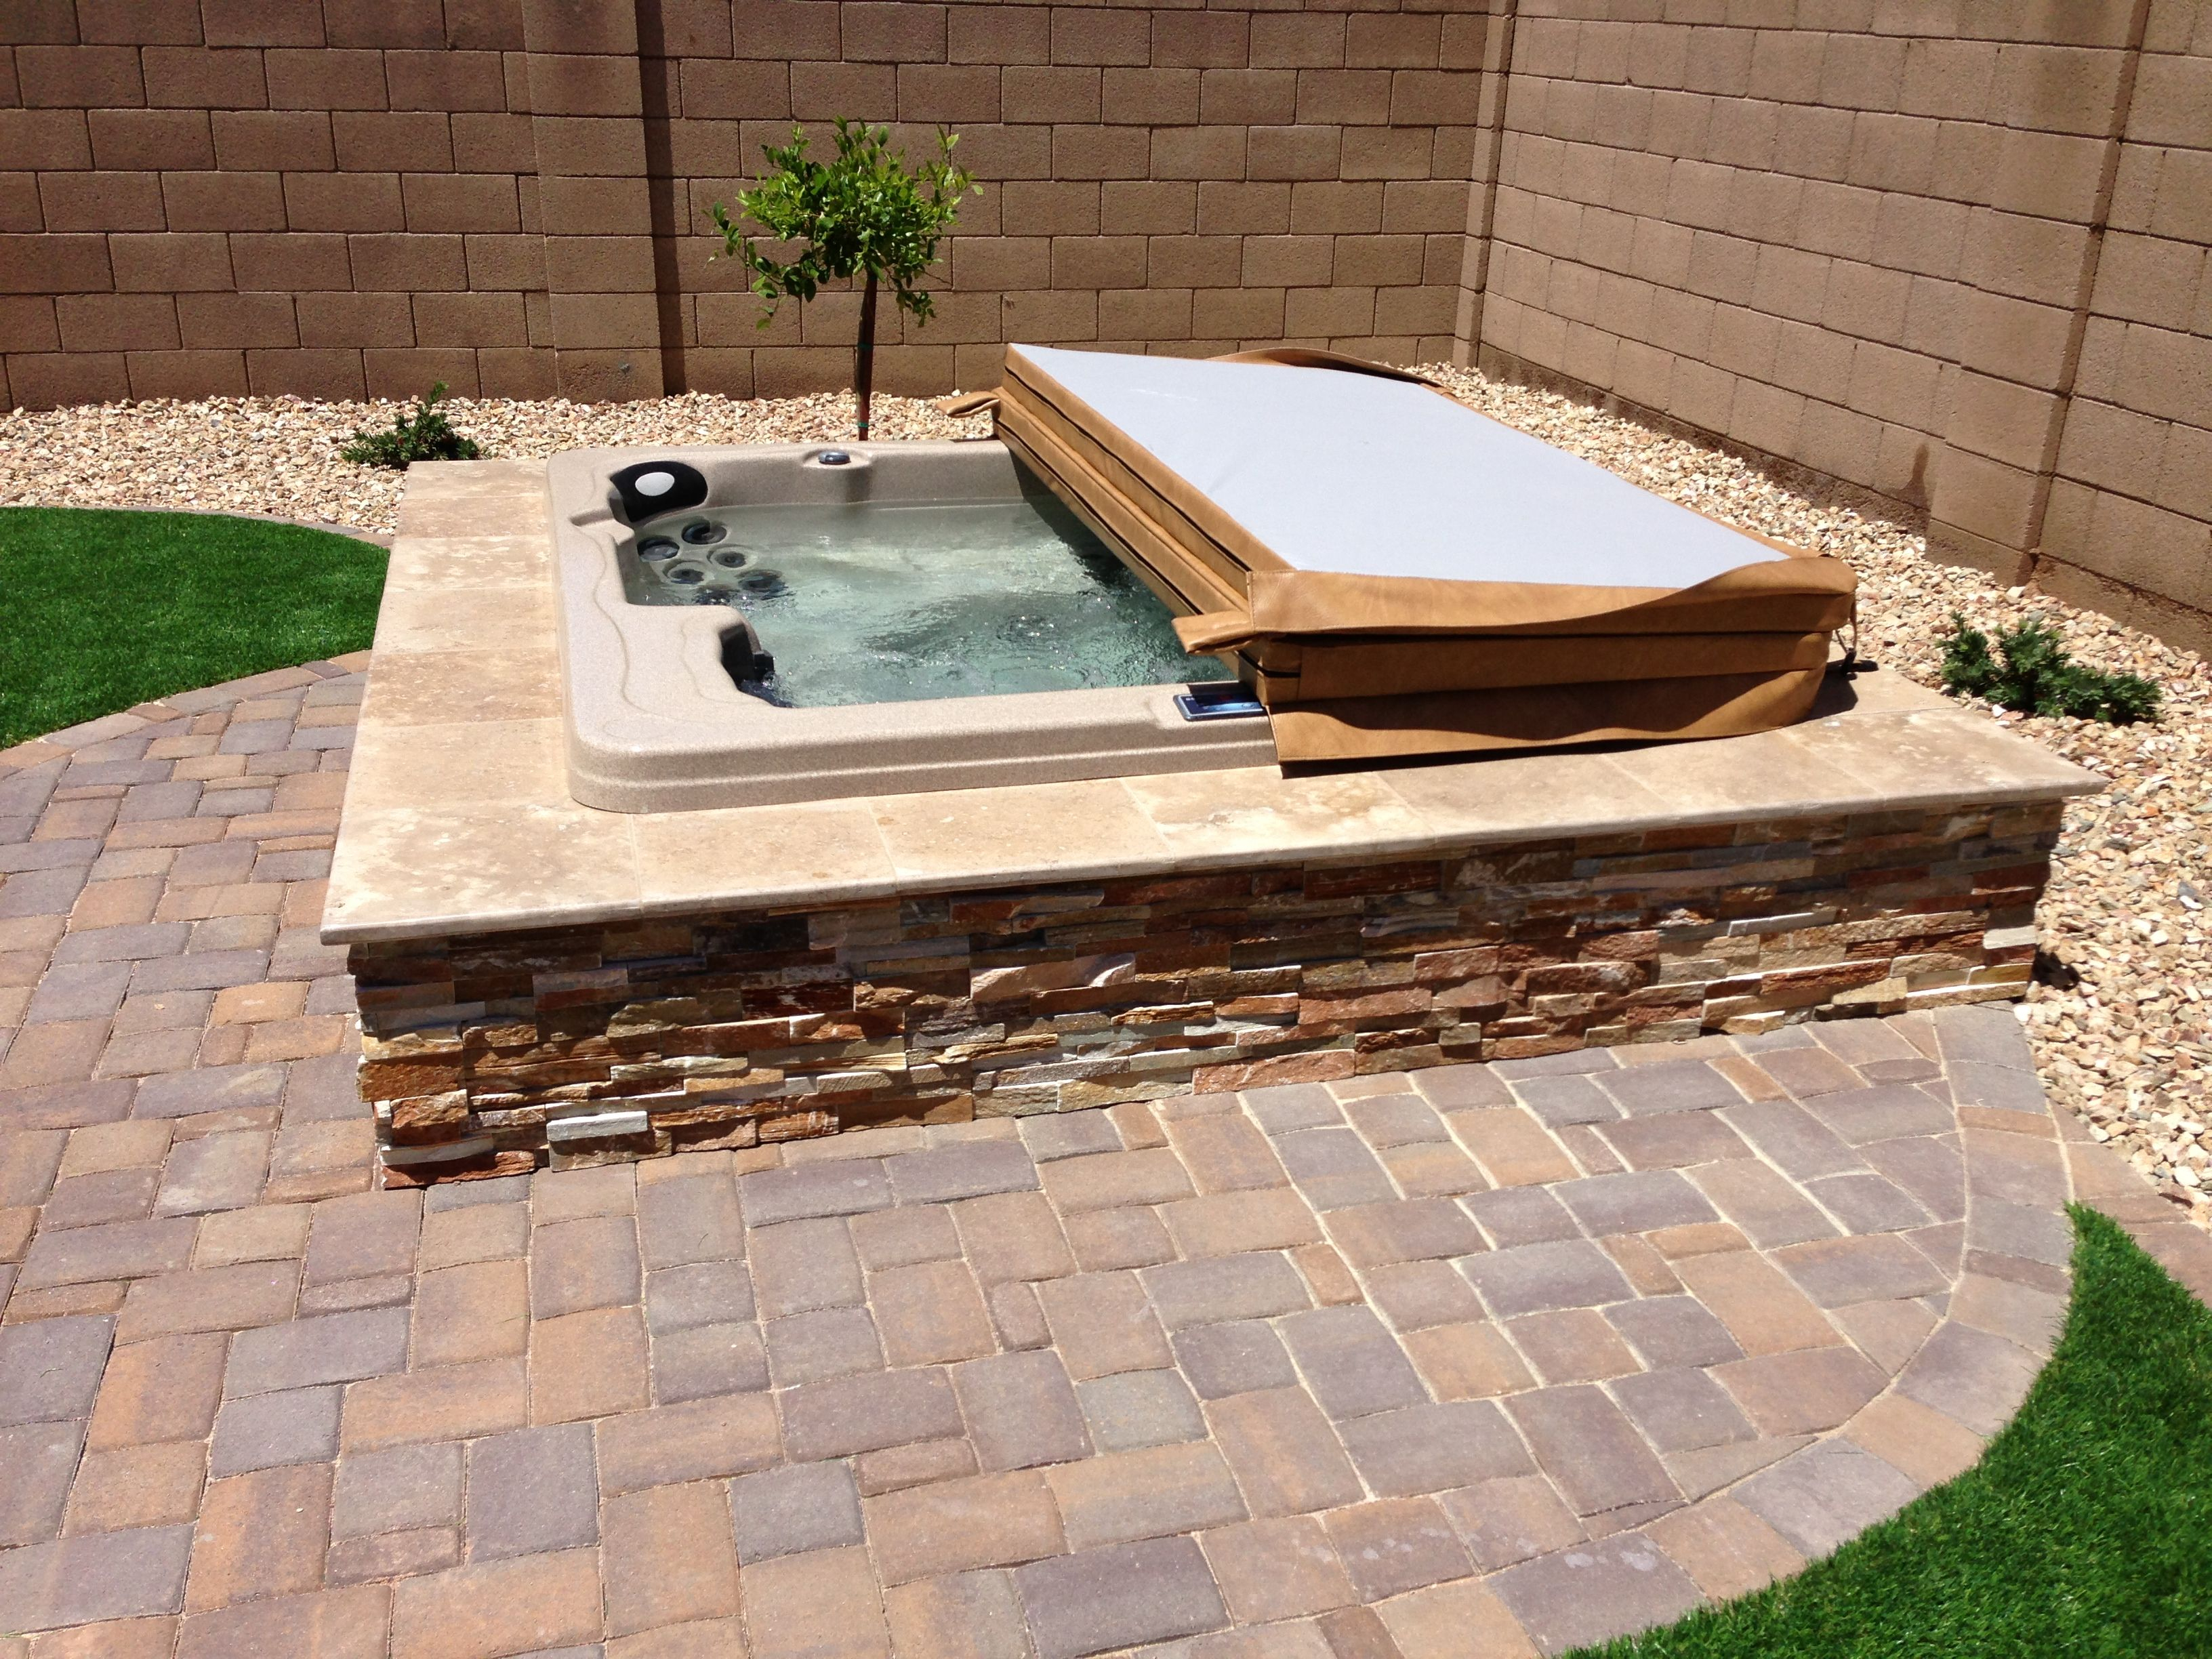 Arizona Backyard Landscapes Place To Be Super Bowl Sunday pertaining to 10 Smart Concepts of How to Makeover Arizona Backyard Landscaping